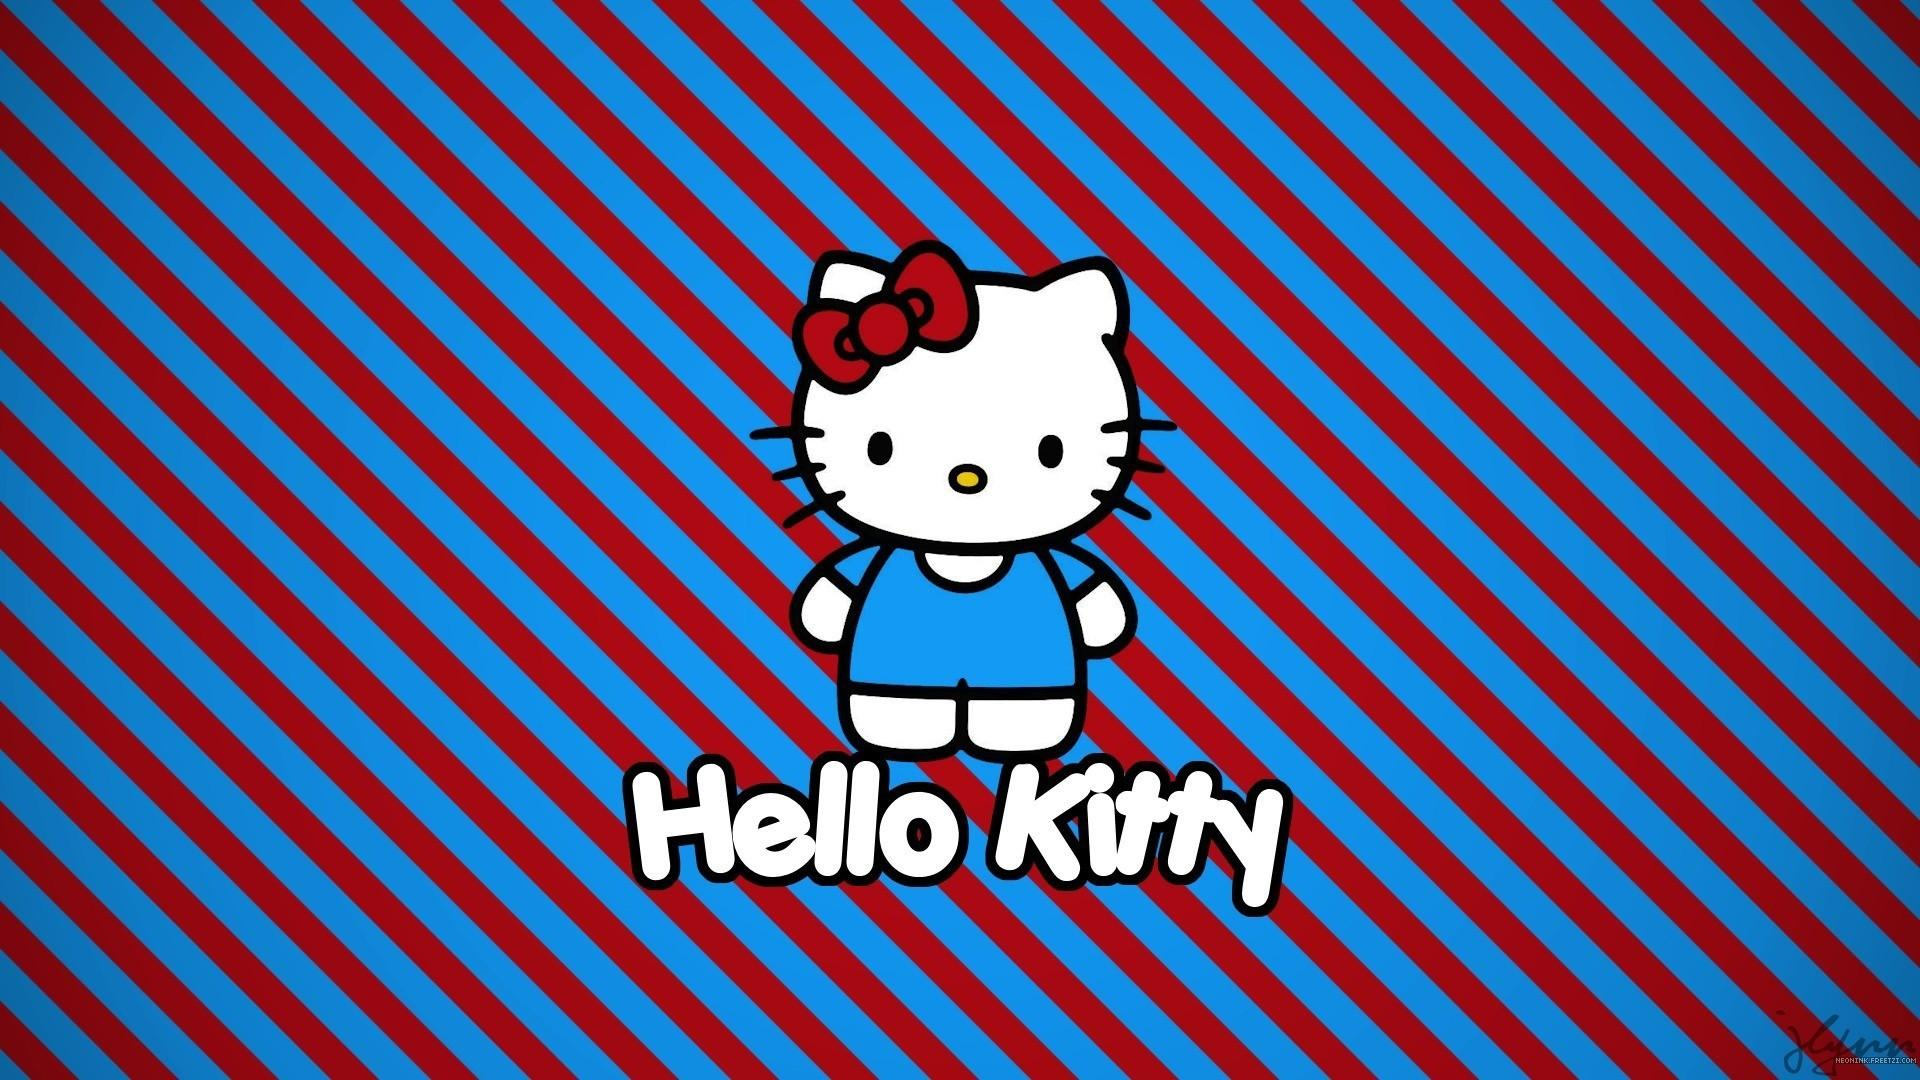 Fondos-HD-de-hello-kitty-Fondosdepantalla.top (12)